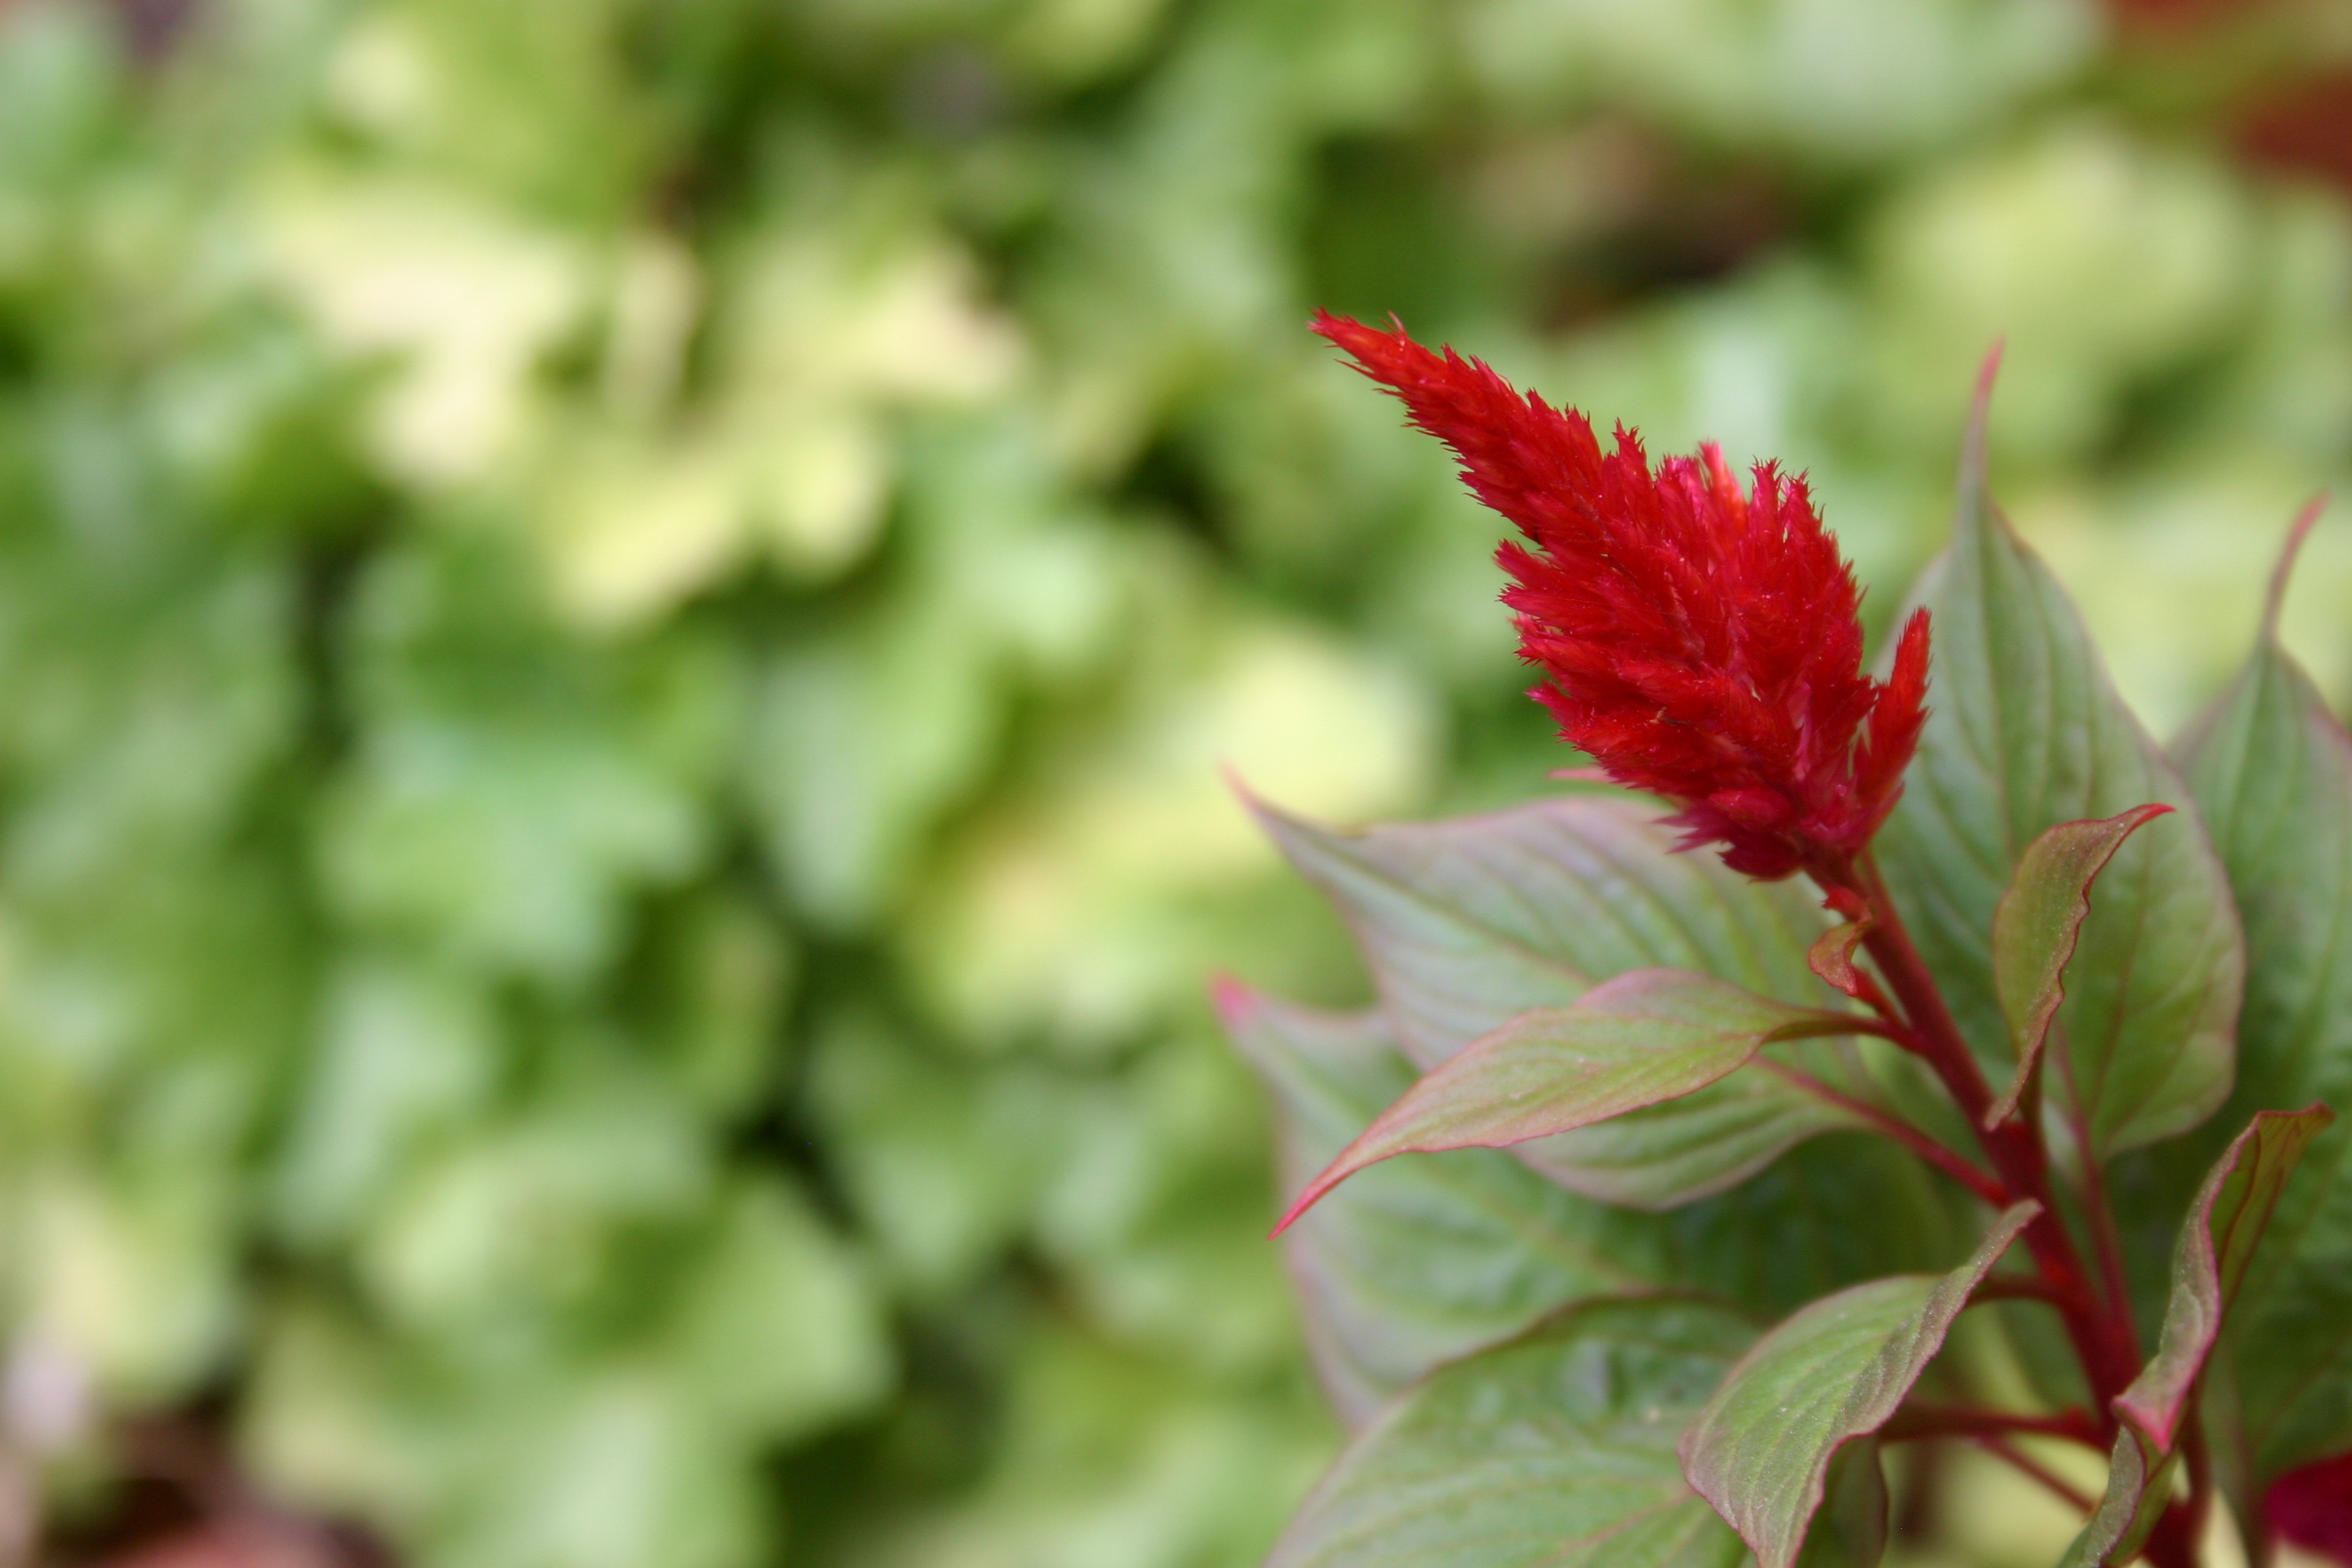 A red Celosia flower in front of a green leafy background.